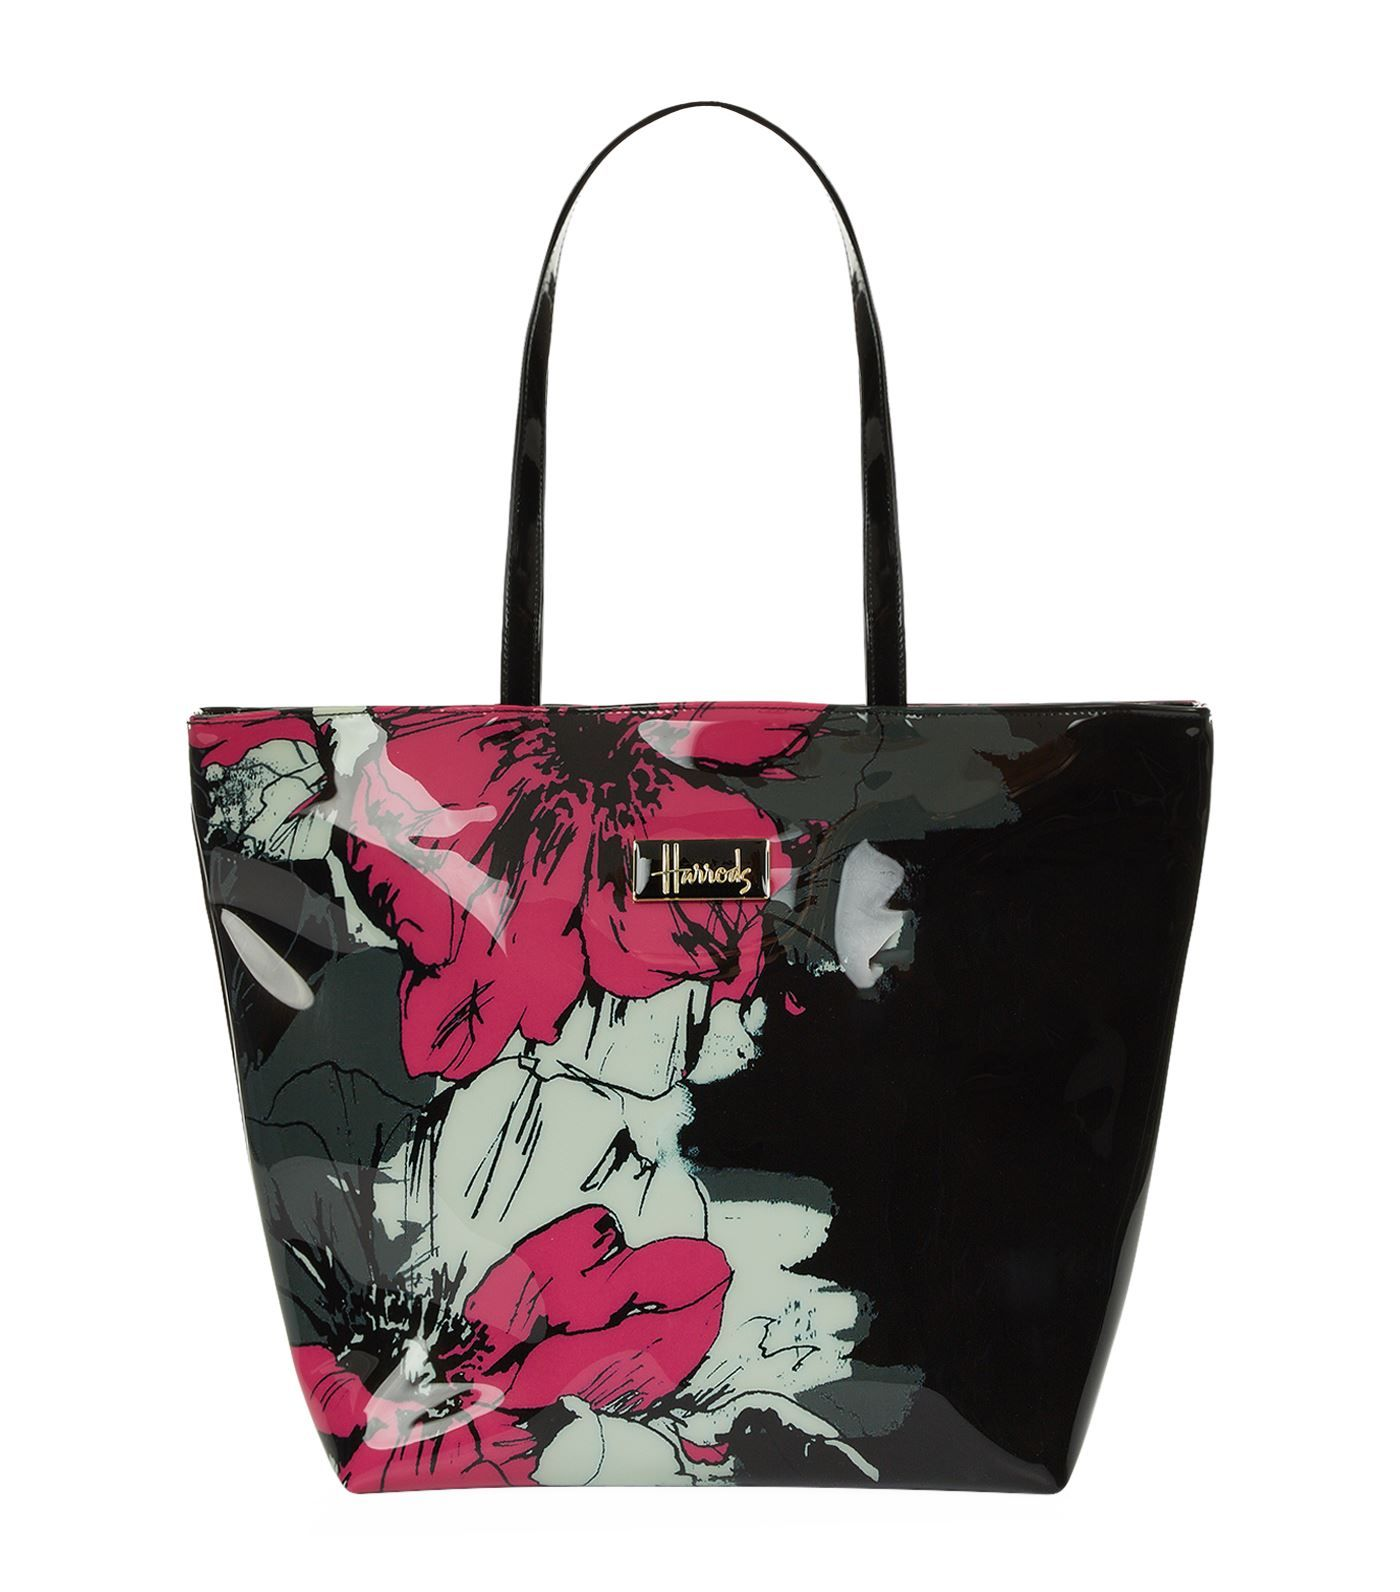 check-out 68616 28aed Harrods Abstract Floral Shoulder Tote Bag | Harrods.com ...